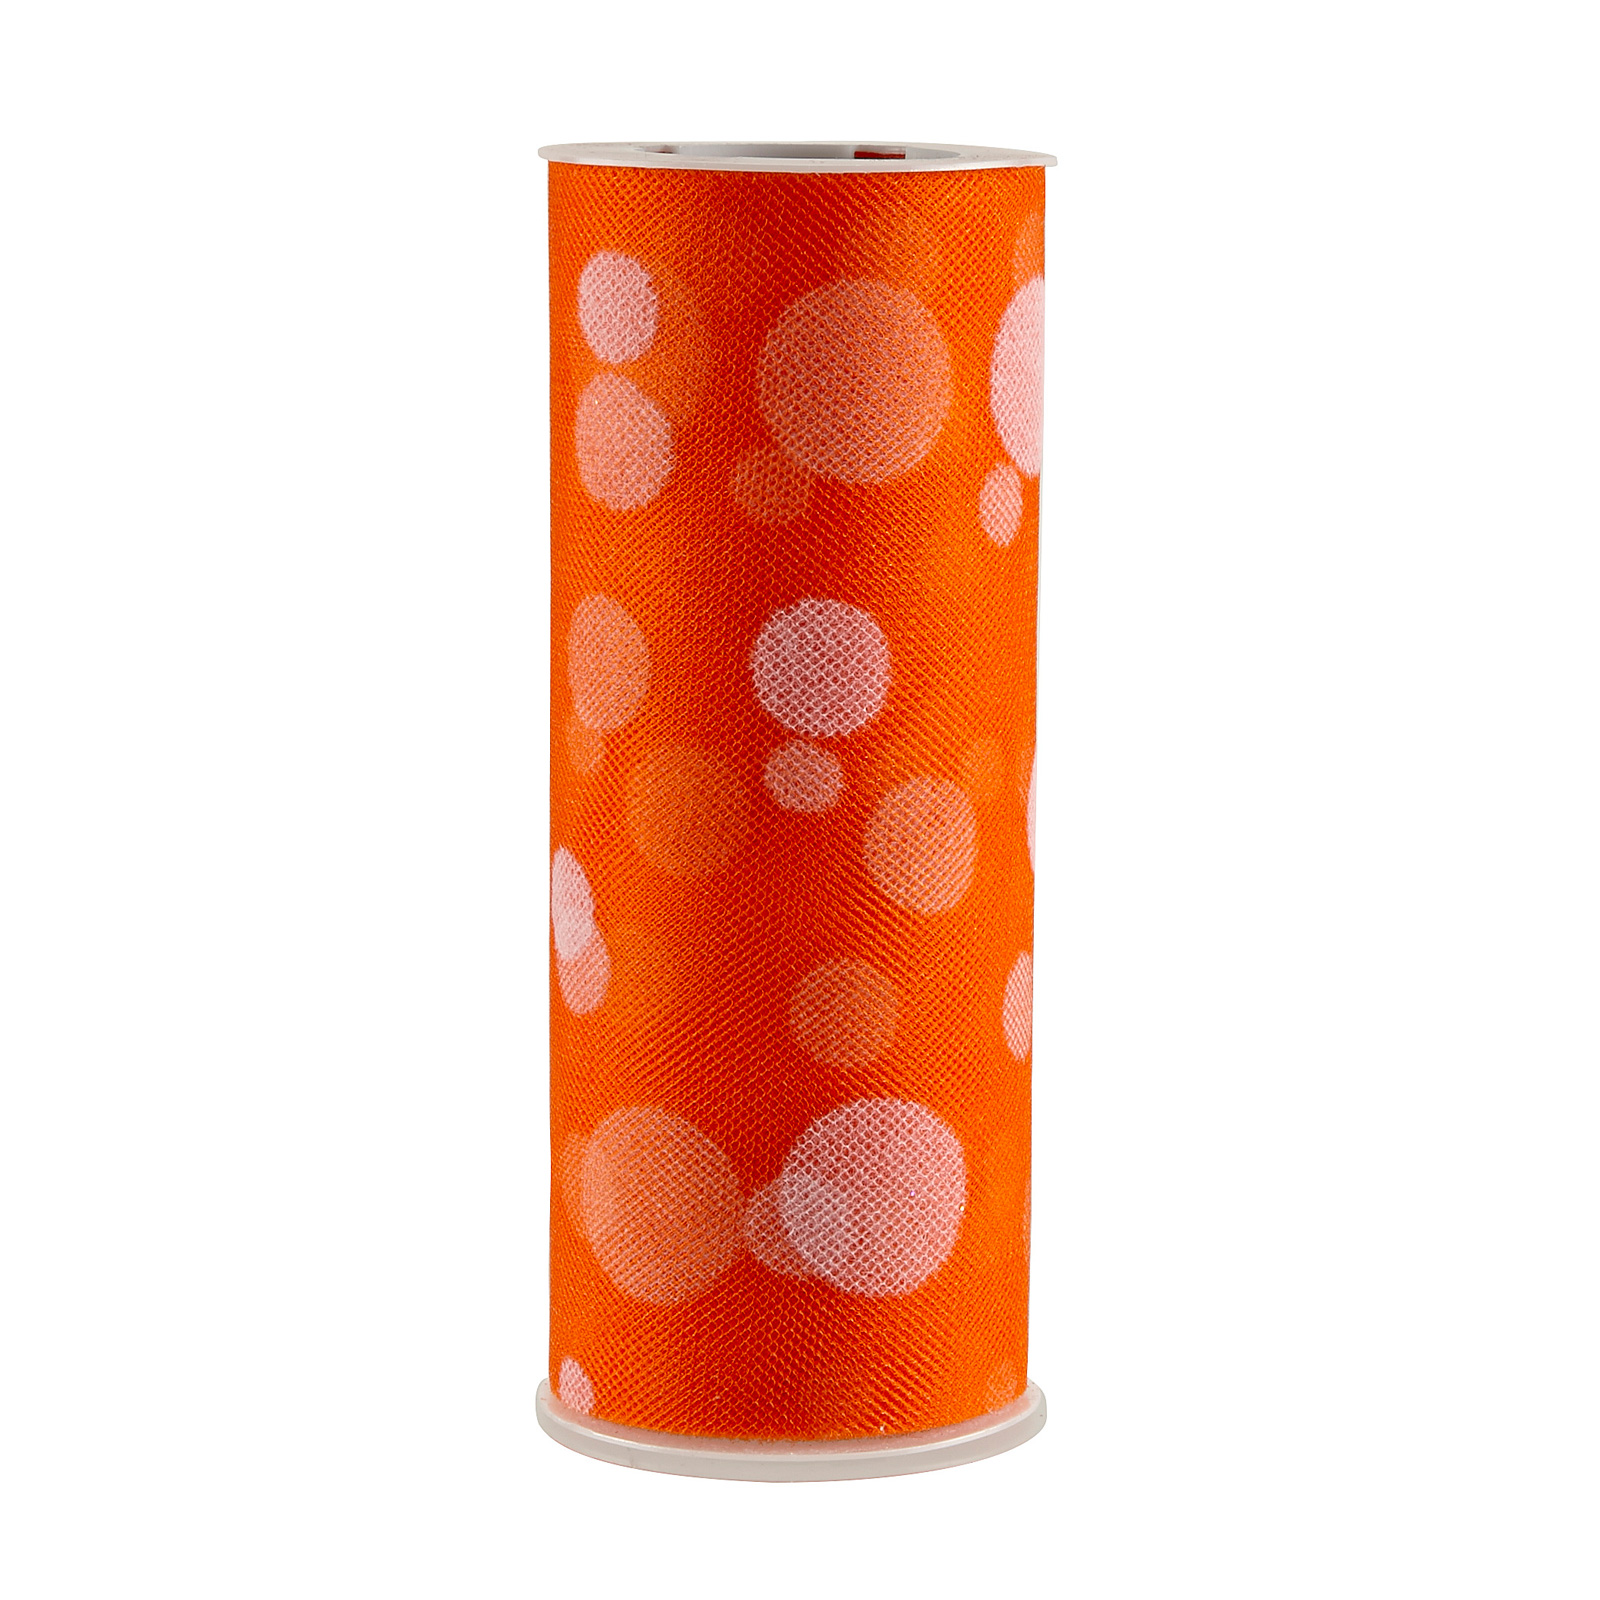 Tulle Spool Polka Dots Orange Fabric